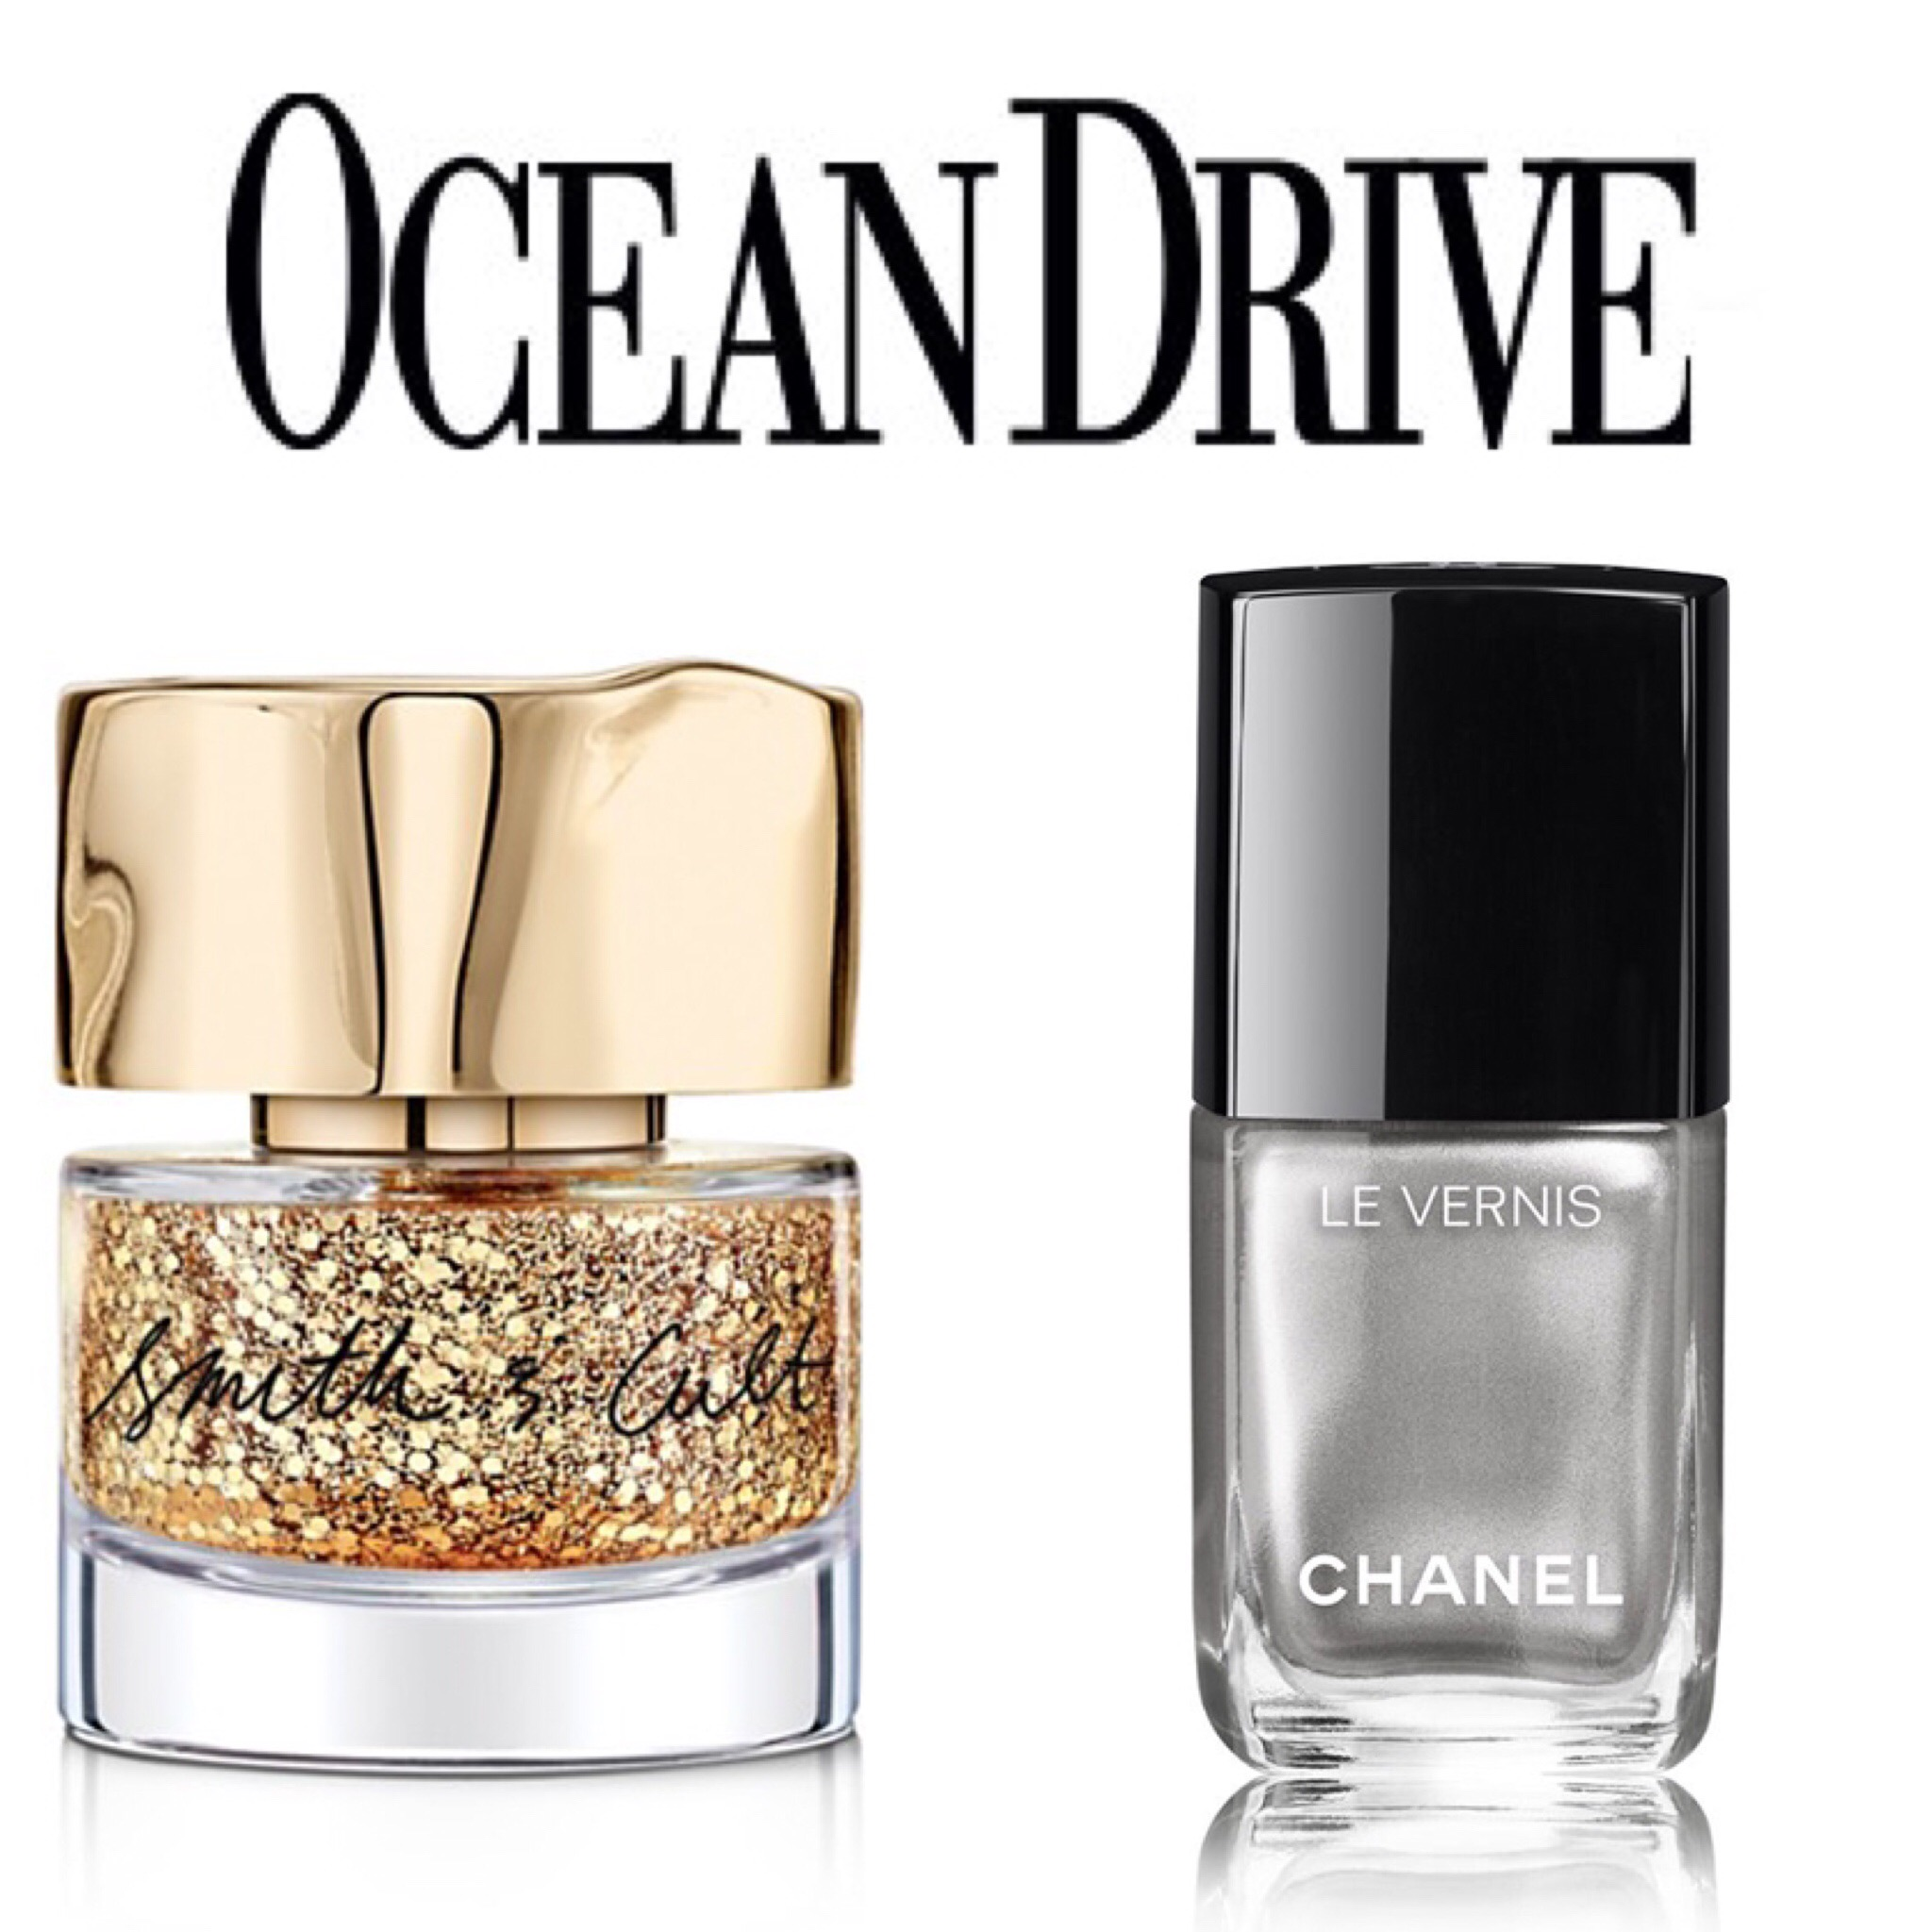 https://oceandrive.com/holiday-inspired-nail-polish-colors-for-festive-manicures